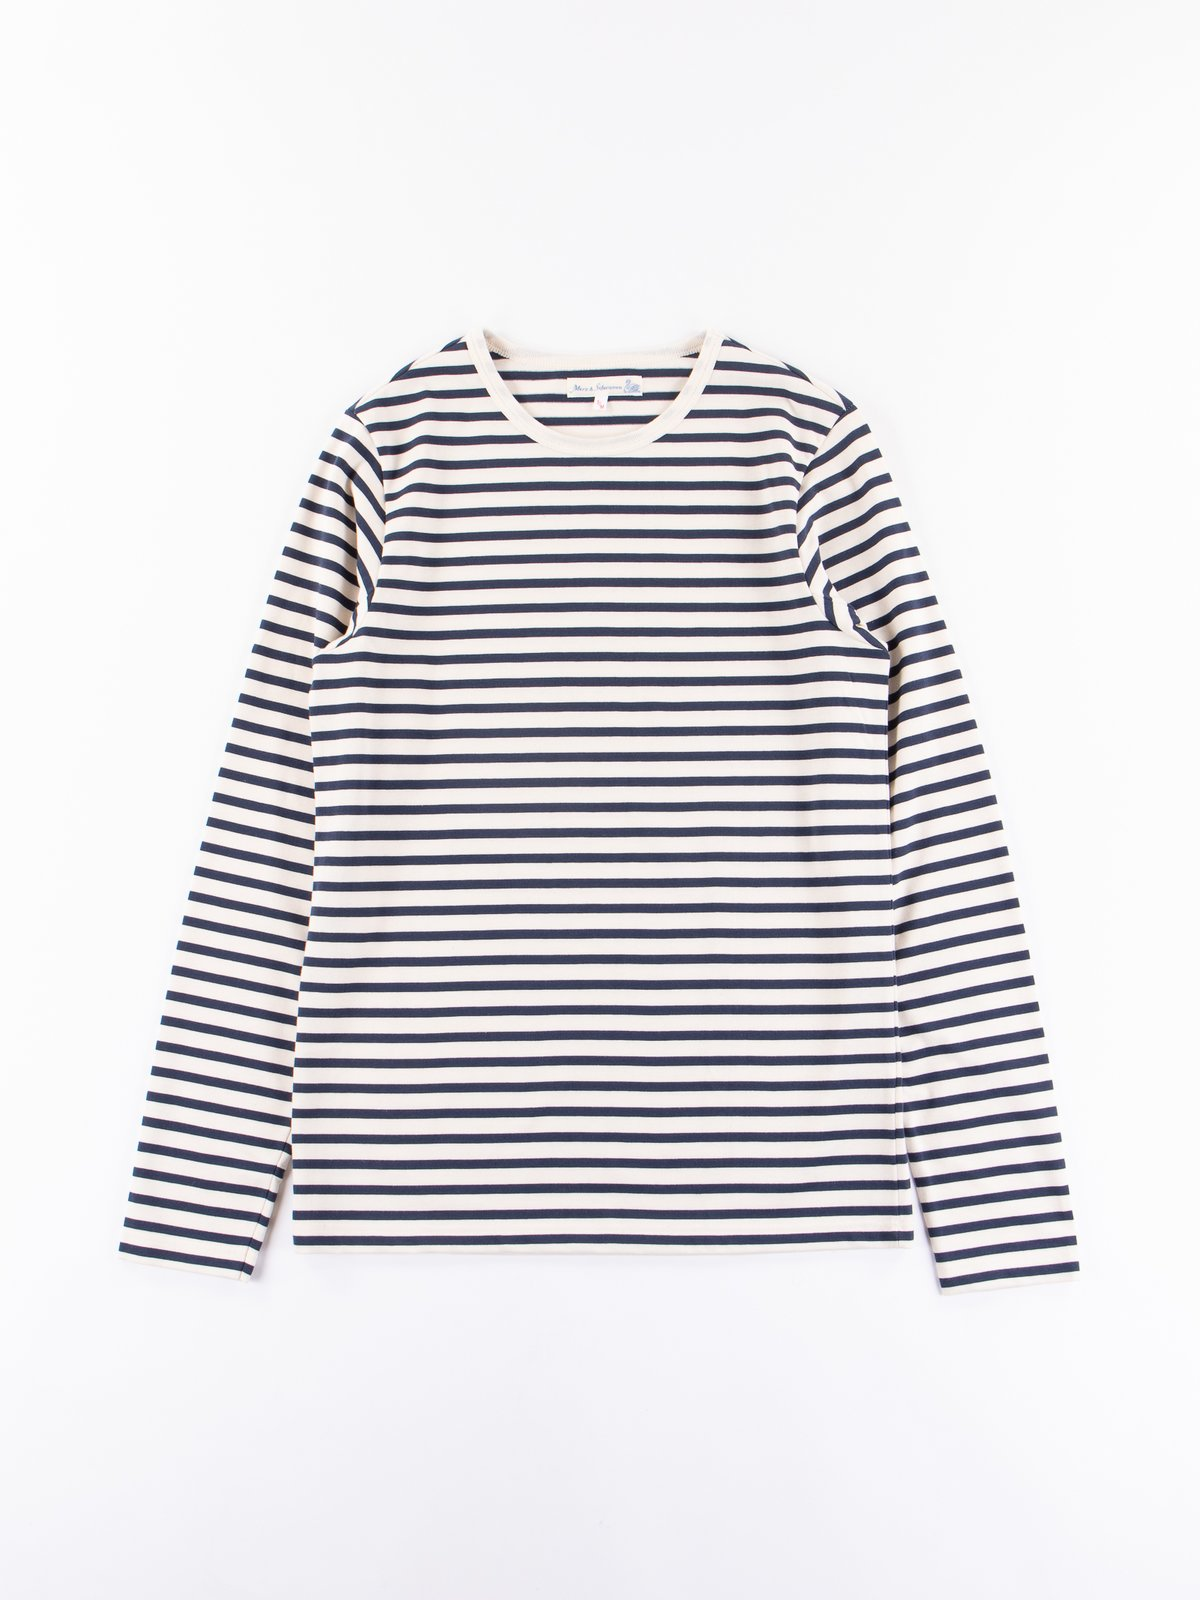 Ink/Natural Stripe 2M12 Crew Neck Long Sleeve Tee - Image 1